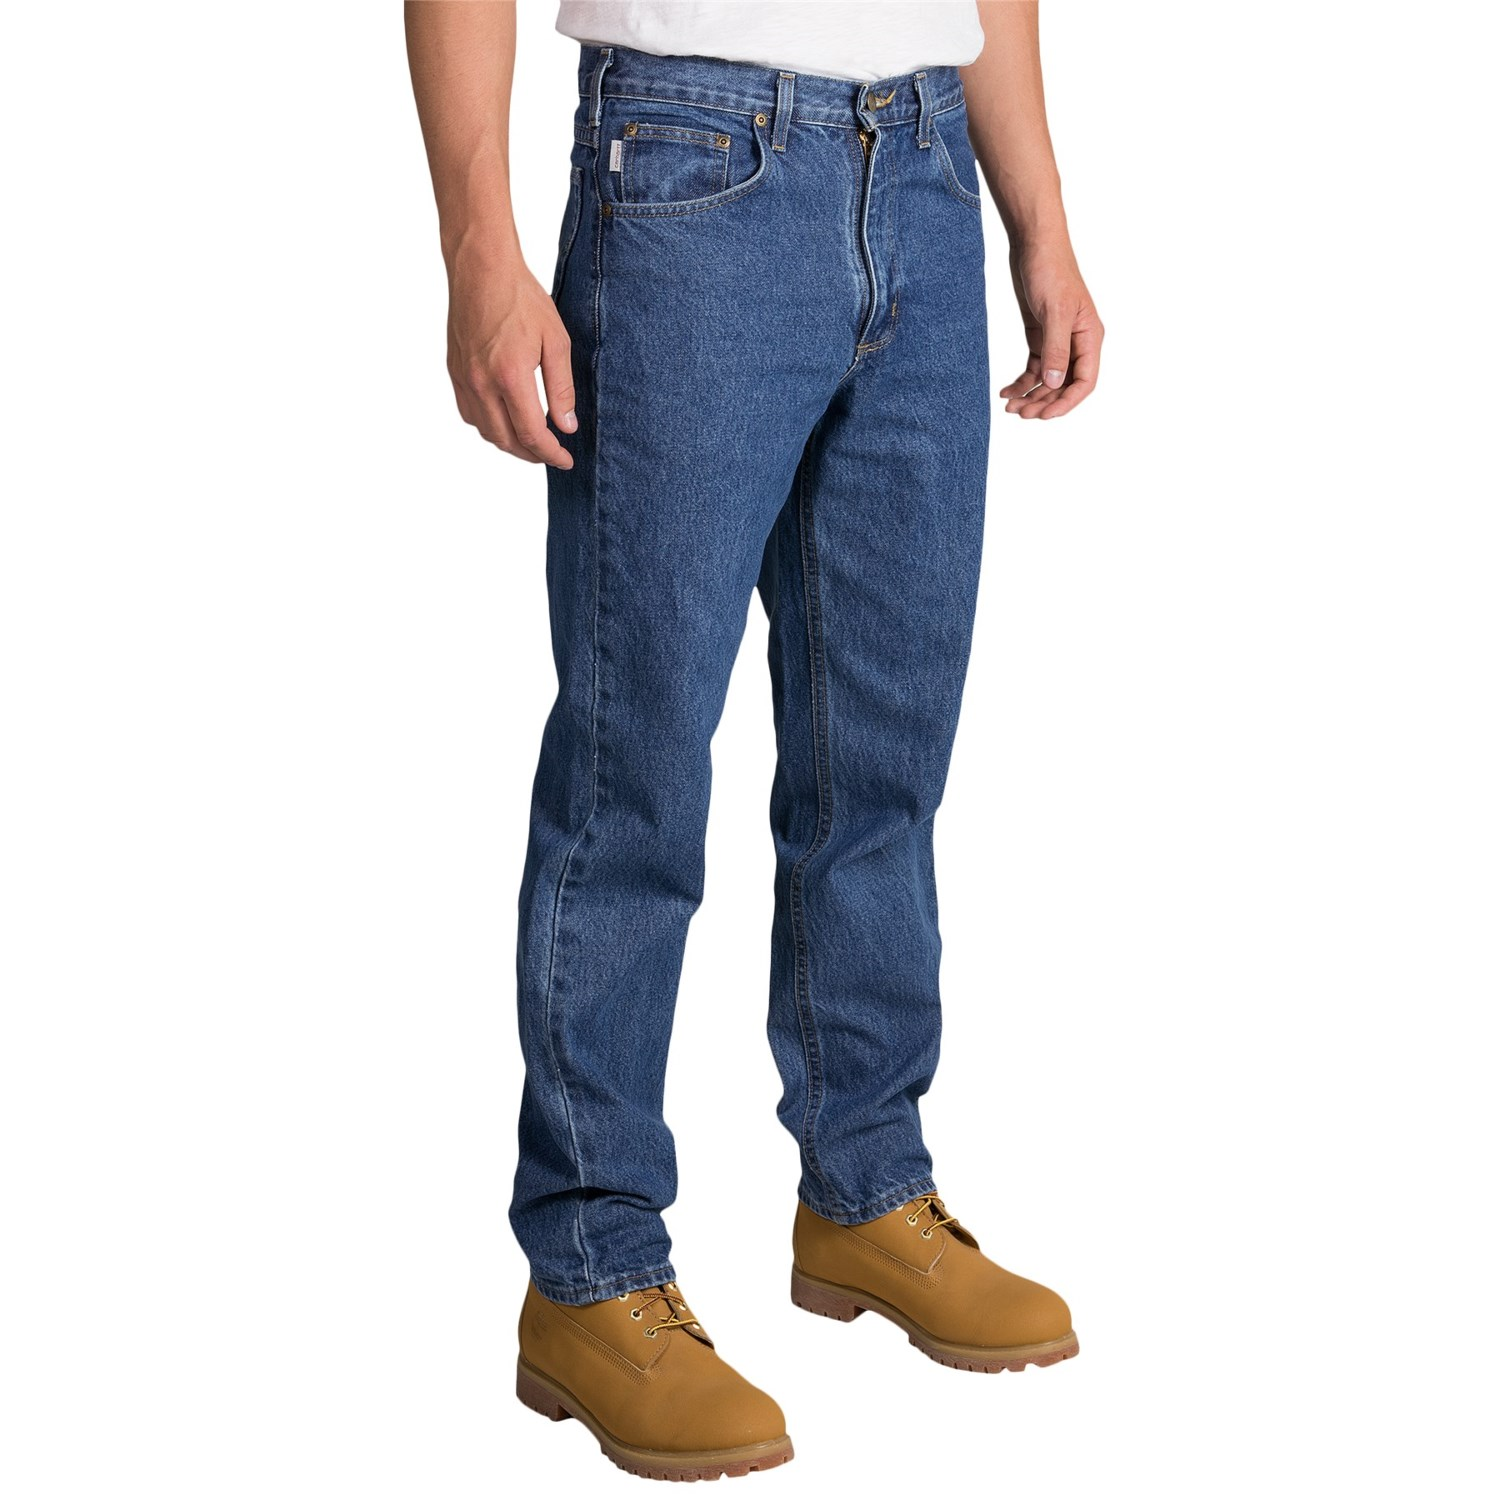 Carhartt Relaxed Fit Jeans (For Men)